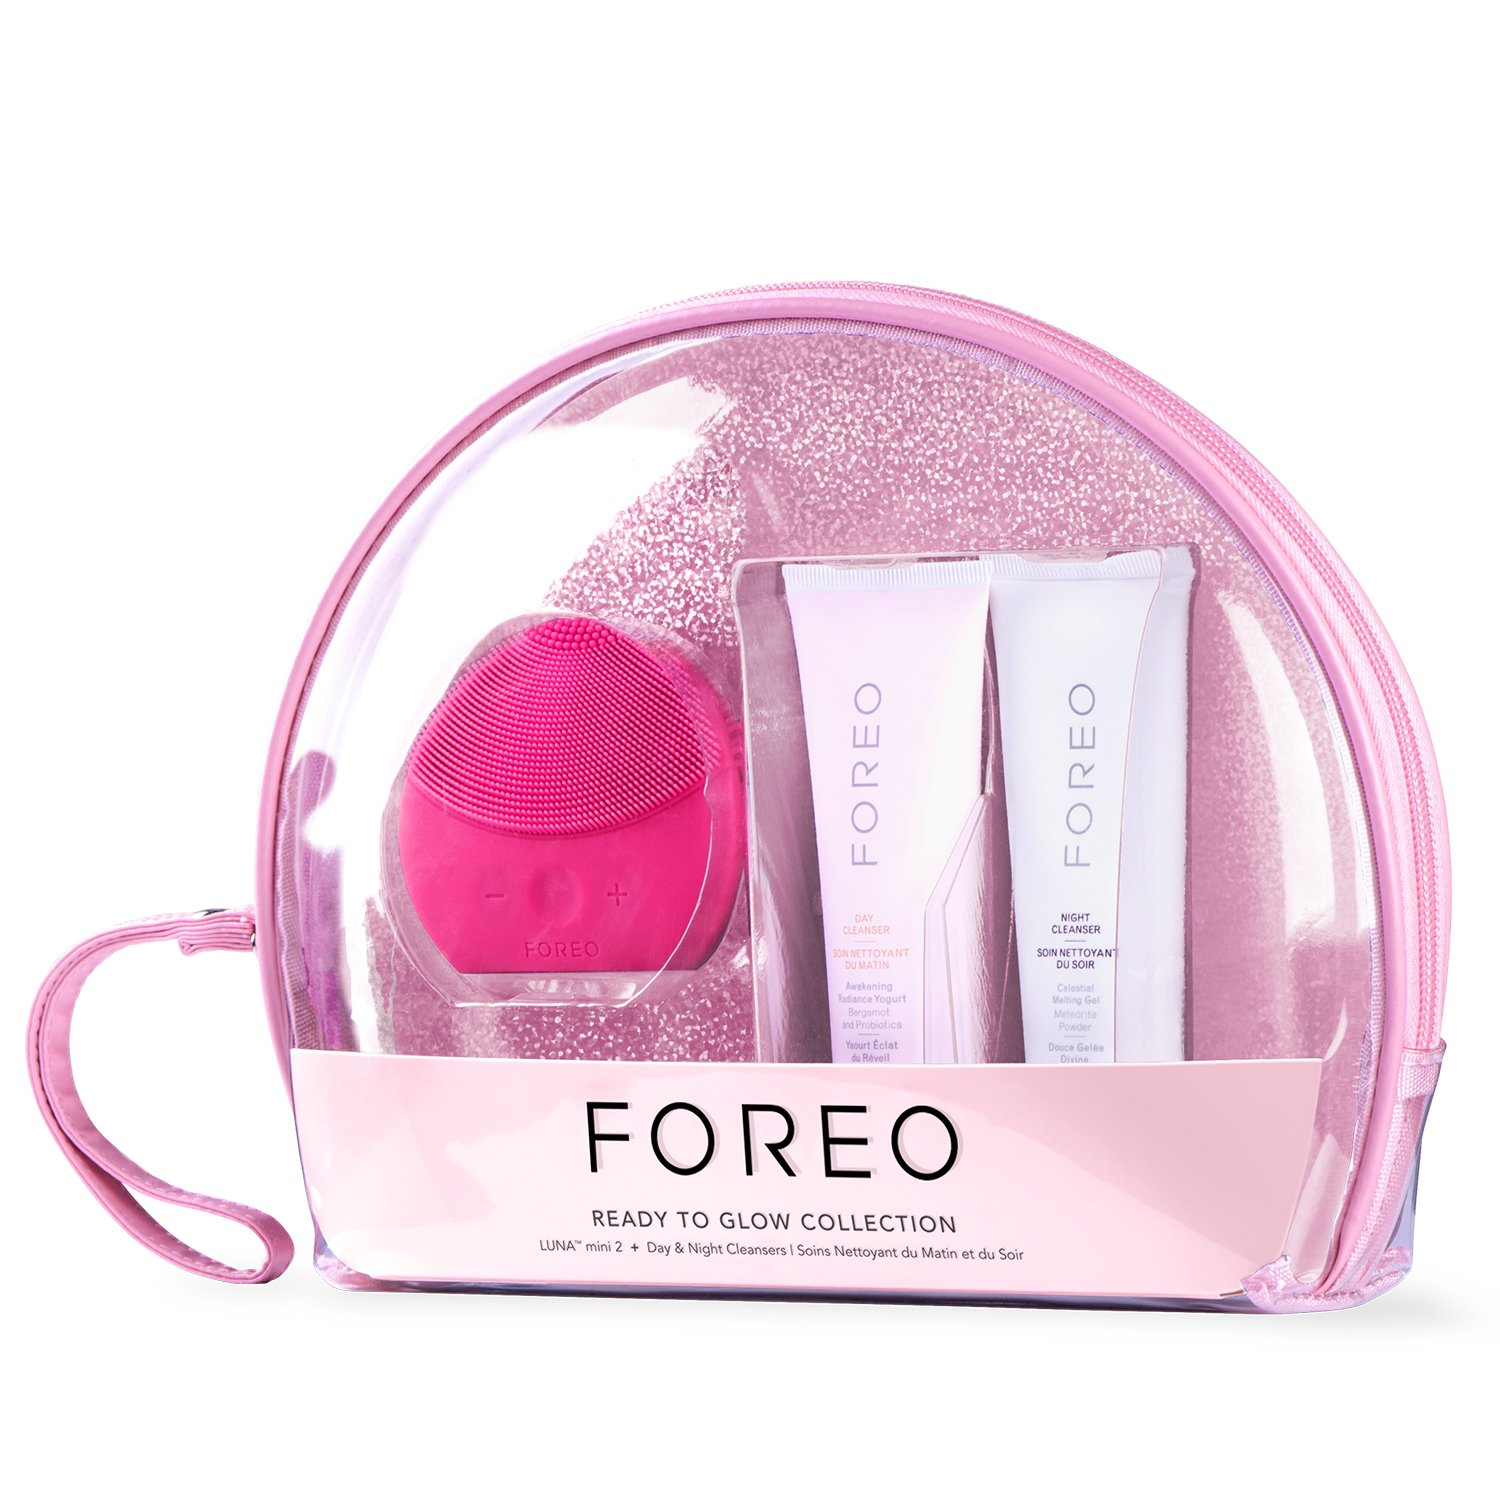 $159(was $212) FOREO LUNA mini 2 (T-Sonic Facial Cleansing Device) (FOREO READY TO GLOW Skin Care Gift Set)